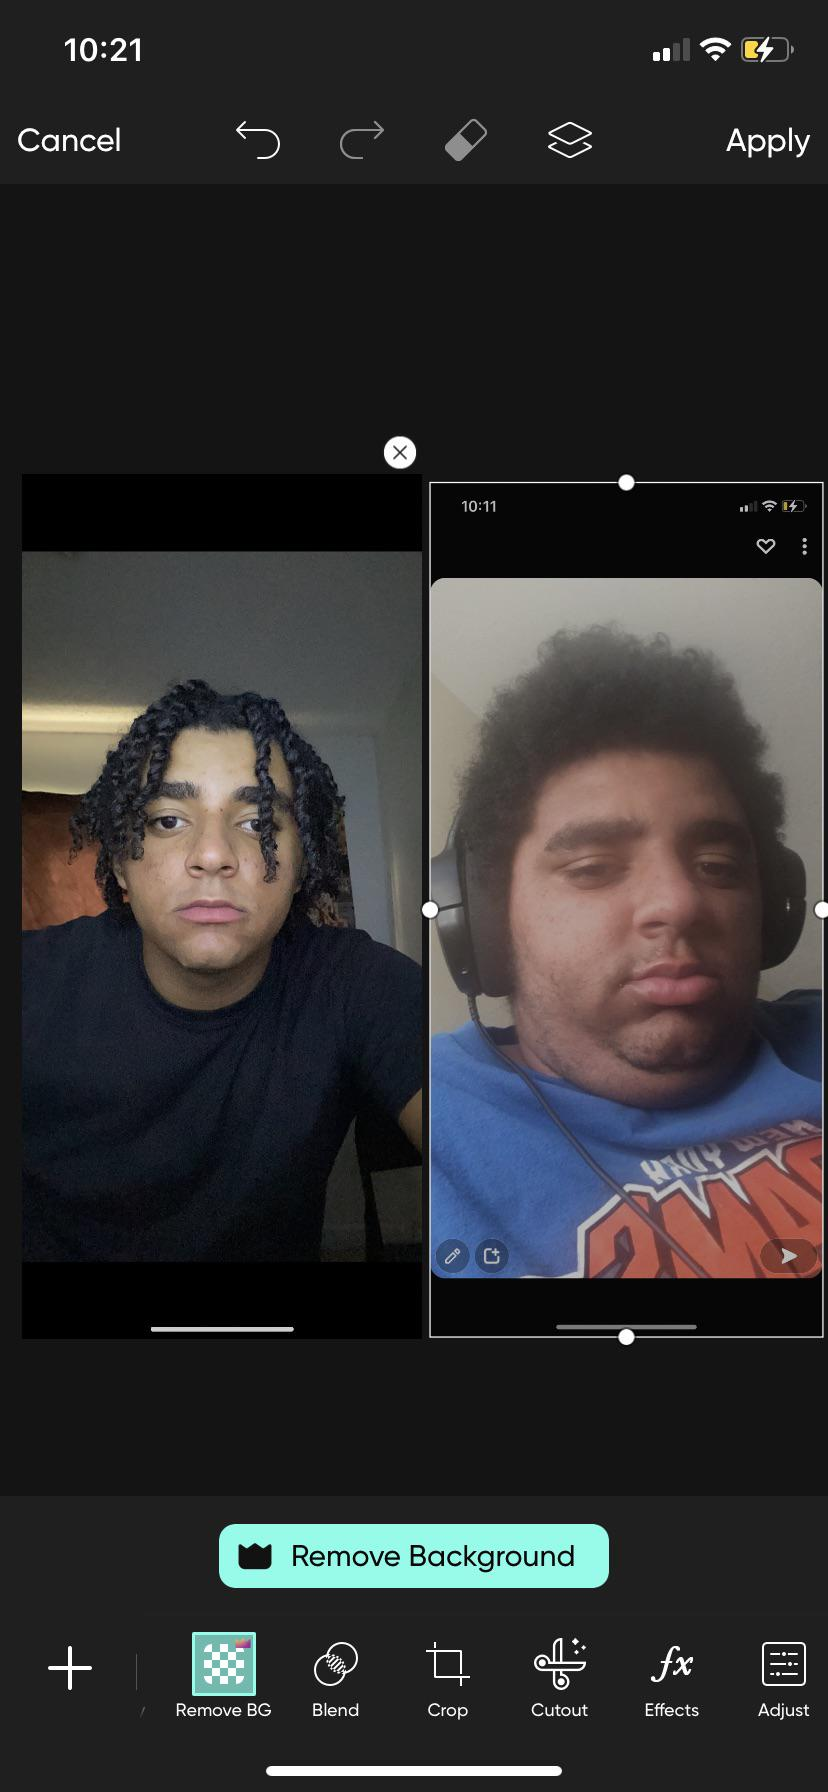 5 feet 11 Male Before and After 85 lbs Weight Loss 295 lbs to 210 lbs